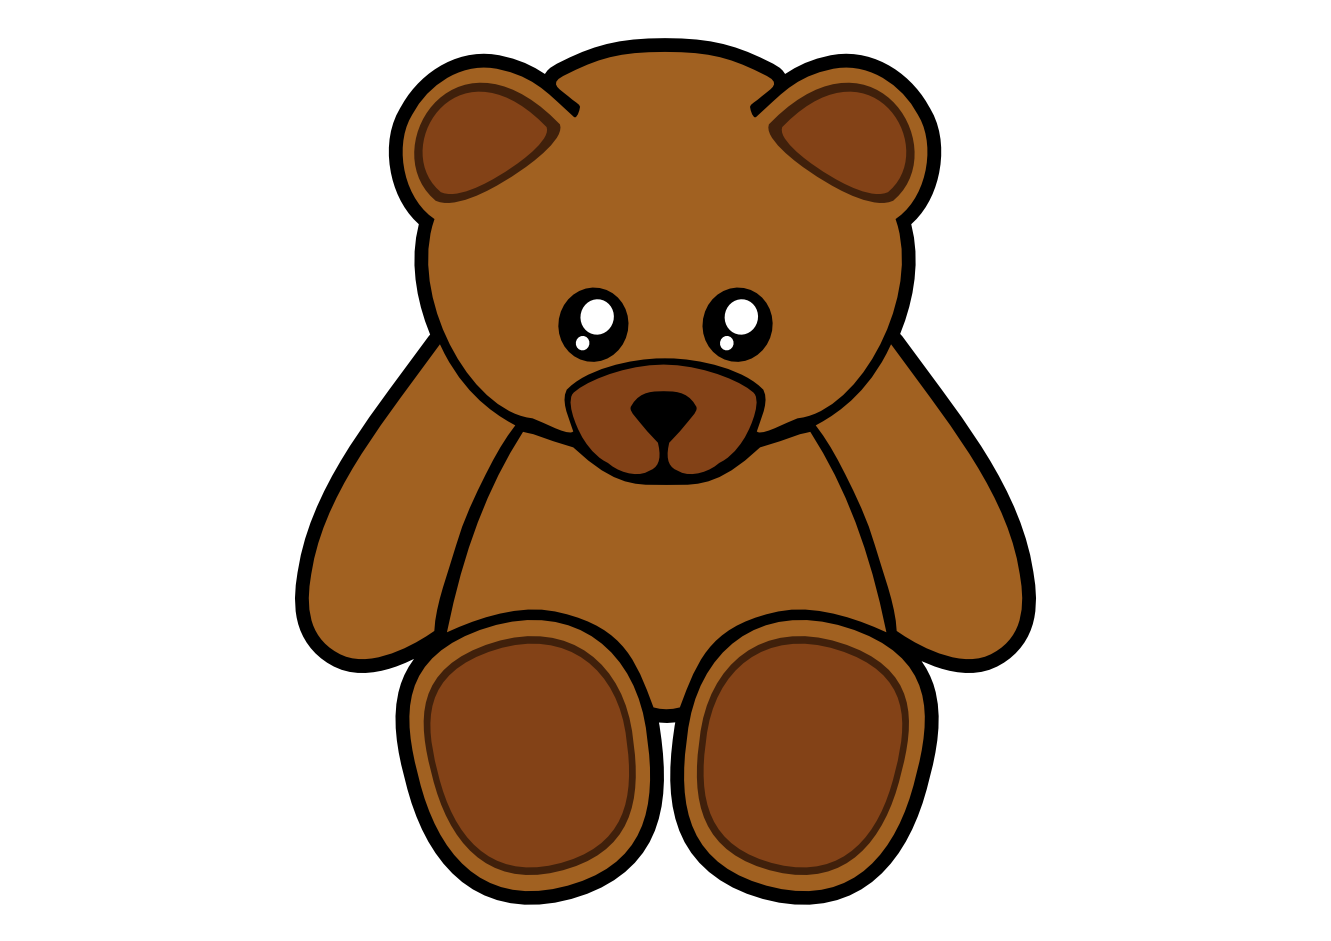 Art   Simple Teddy Bear Clipartist Net 2012 June Art Clip Art Clipart